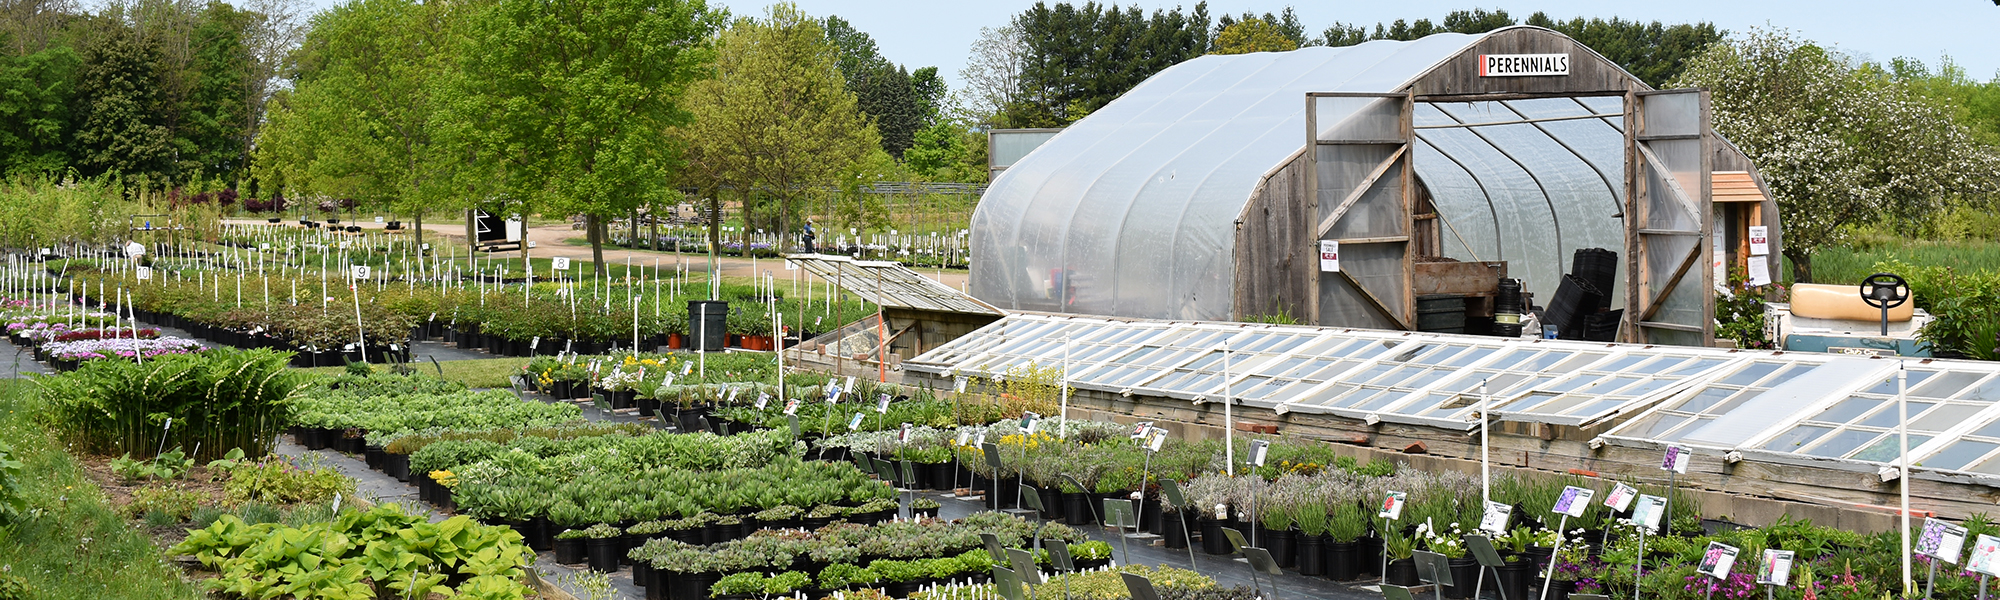 Perennials shopping area and hoop house